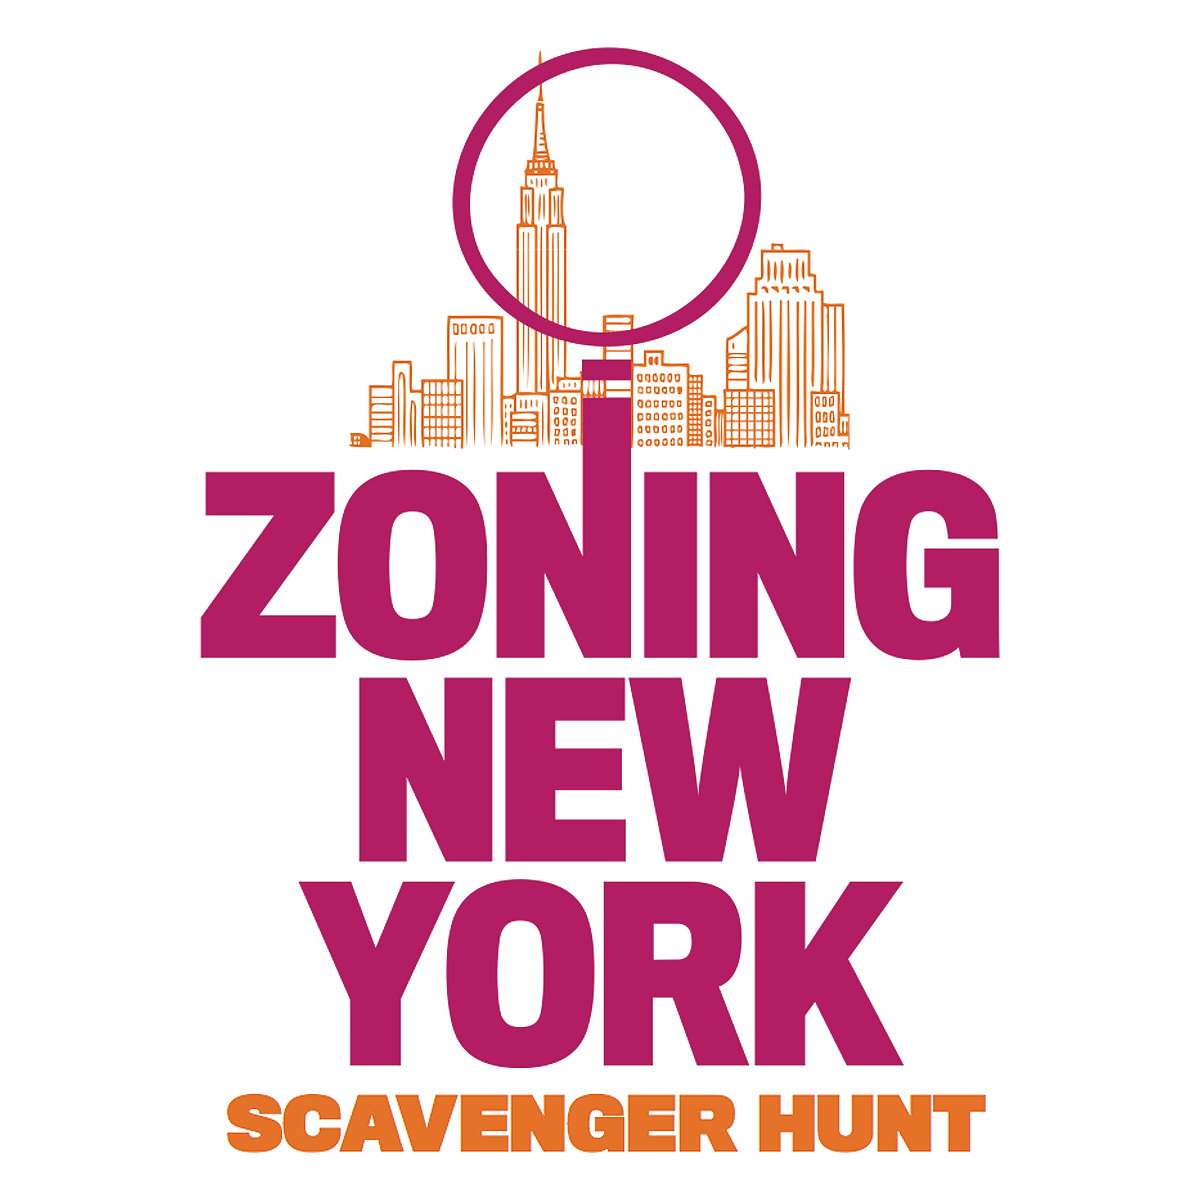 Zoning New York Scavenger Hunt